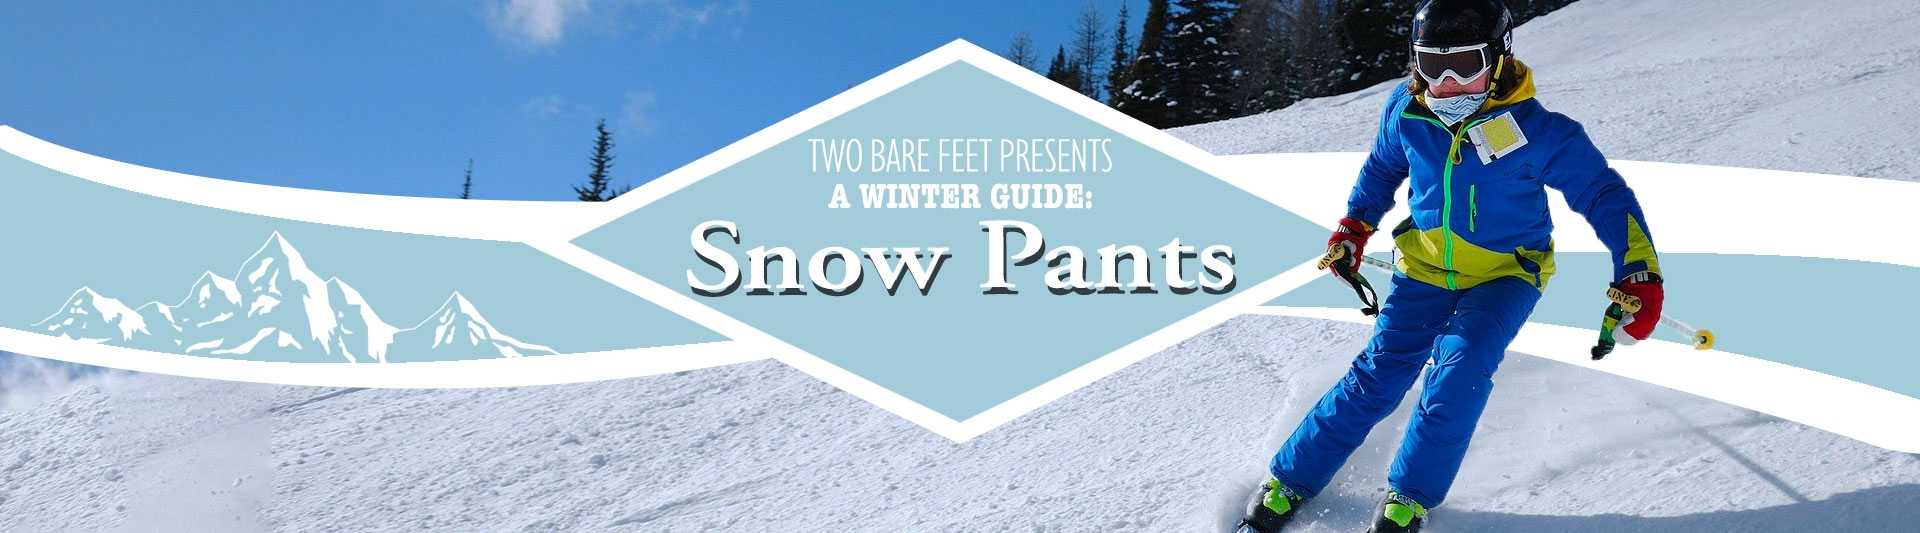 Women's snow trousers banner